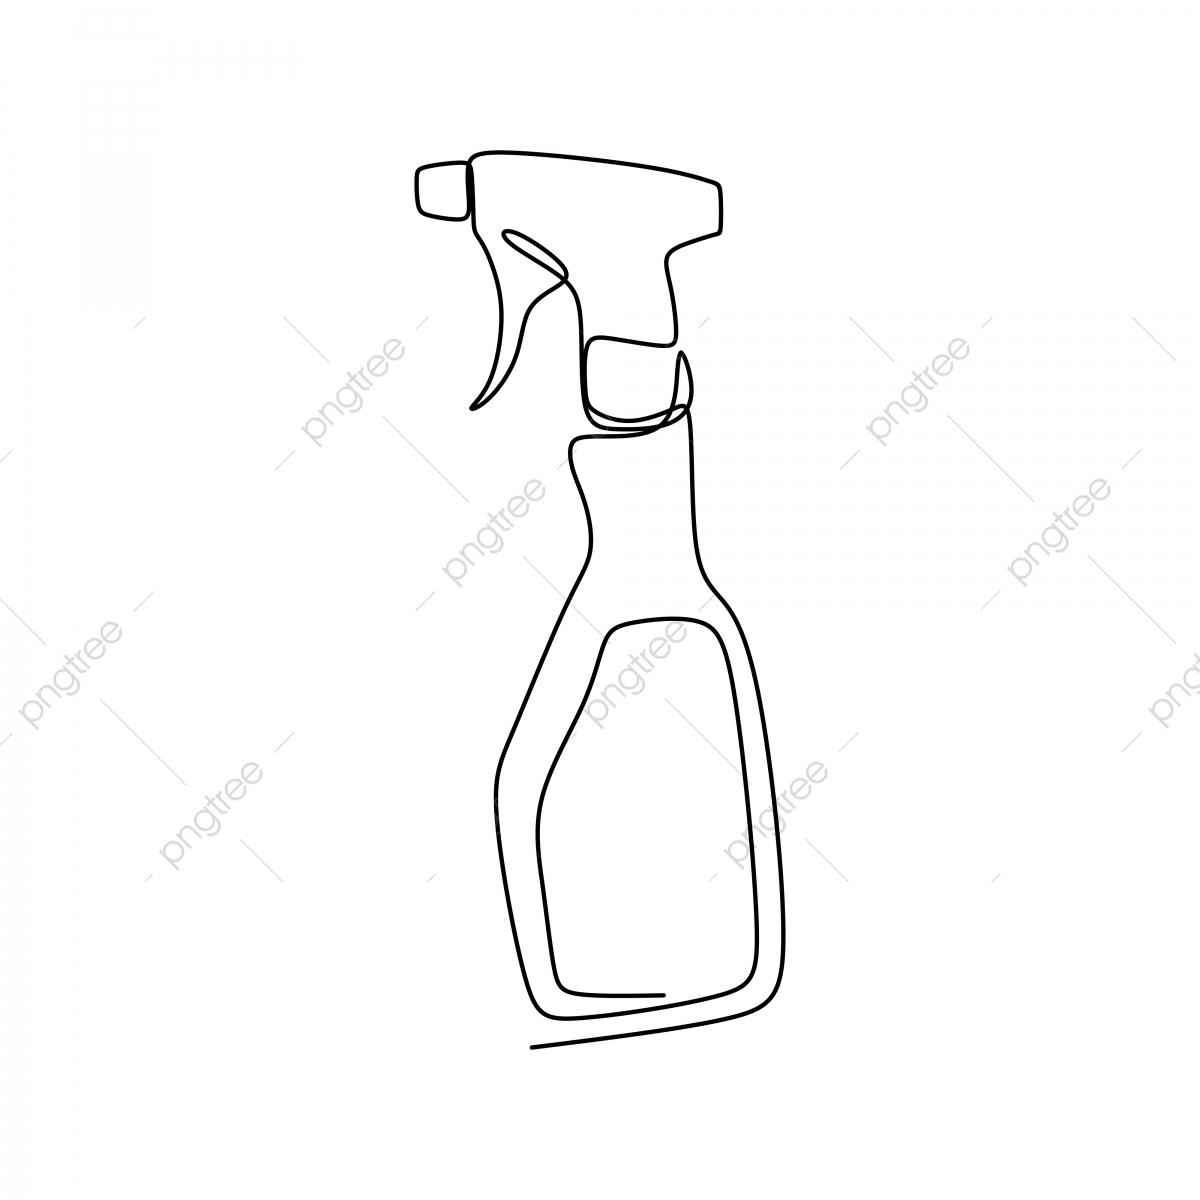 image free stock Vector bottle line drawing. Perfume and clothing fragrance